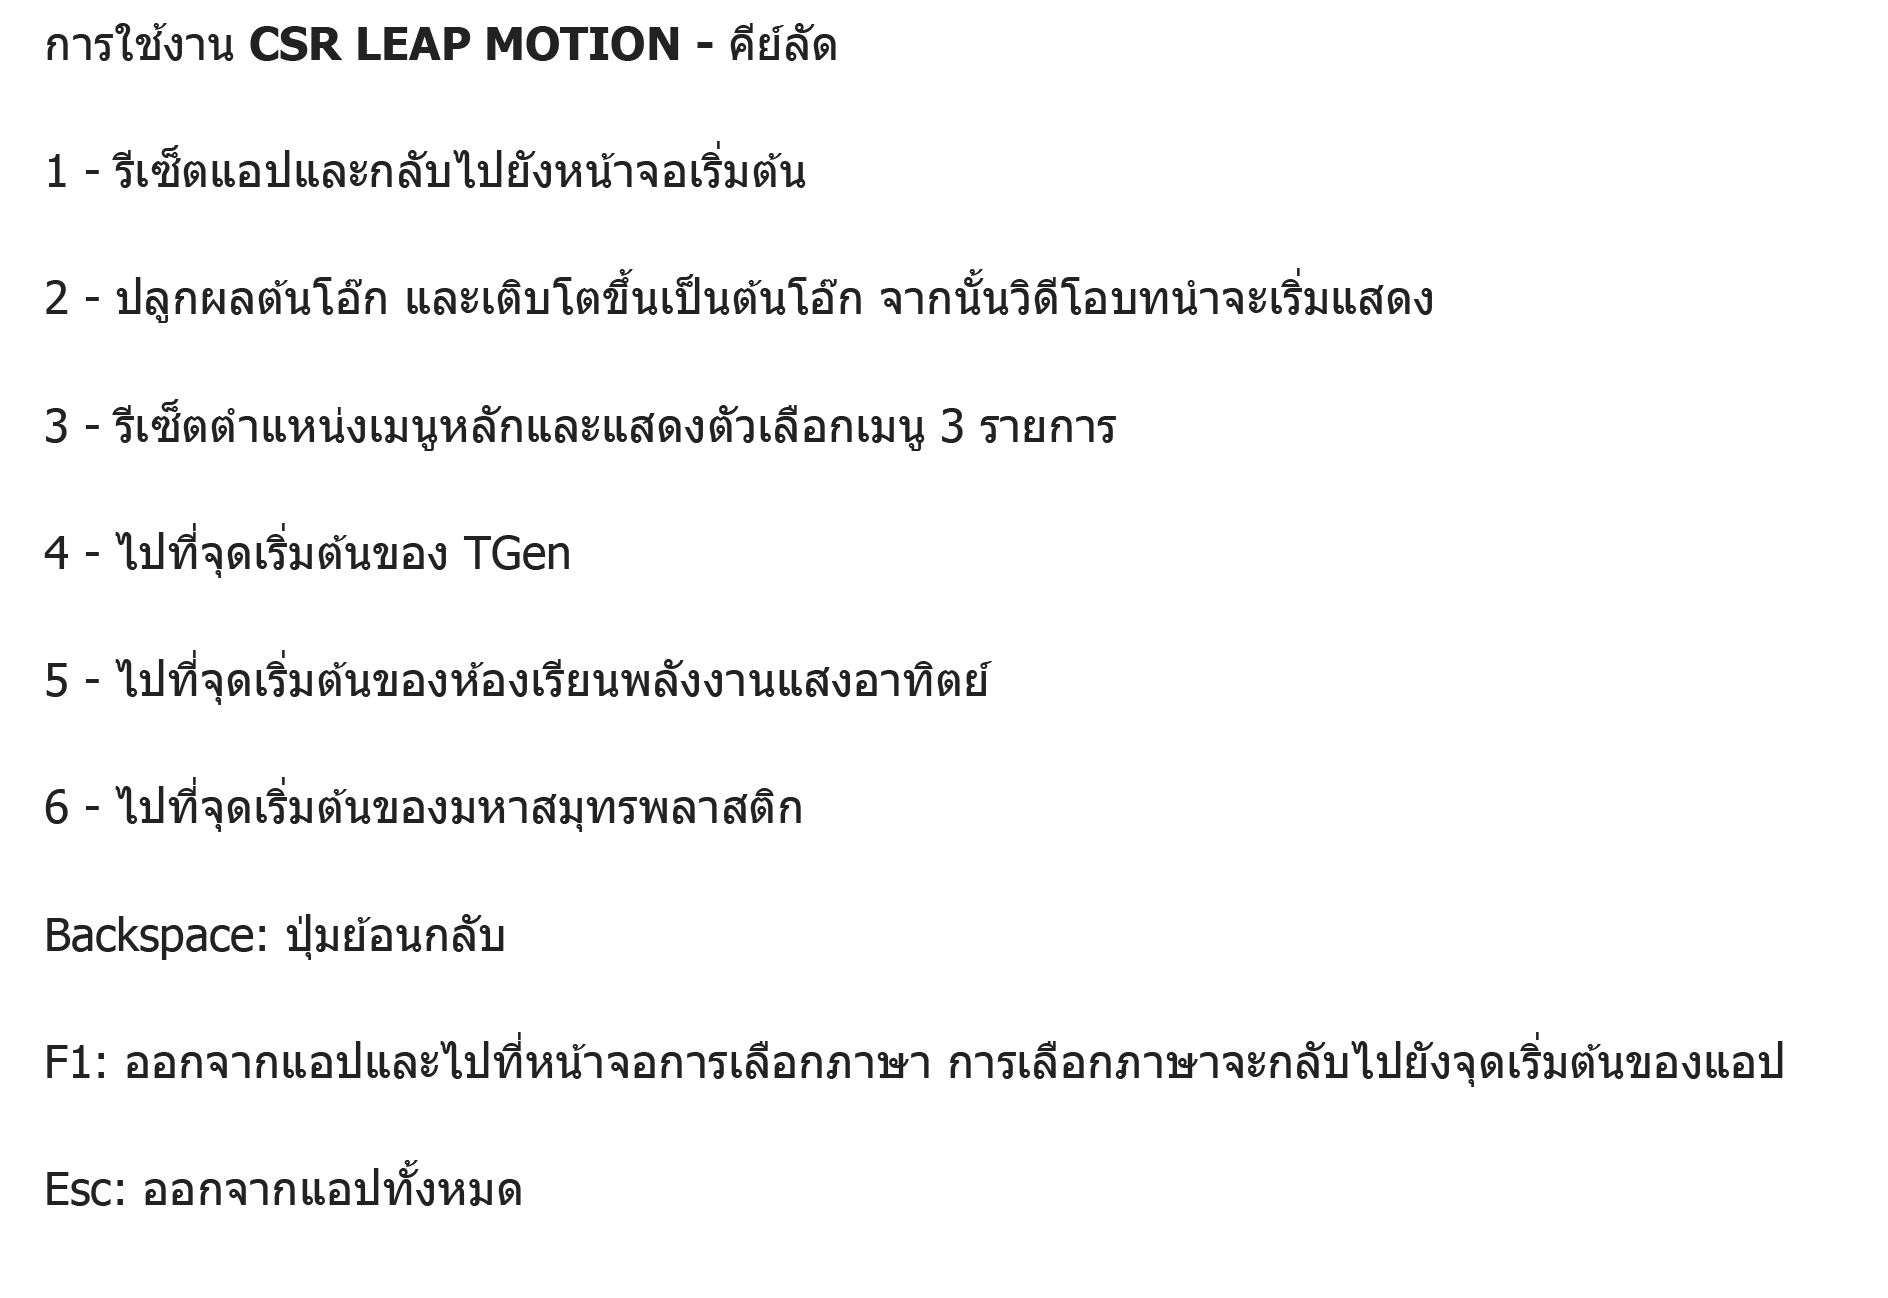 CSR Leap Motion - Hot Keys - Thai.jpg